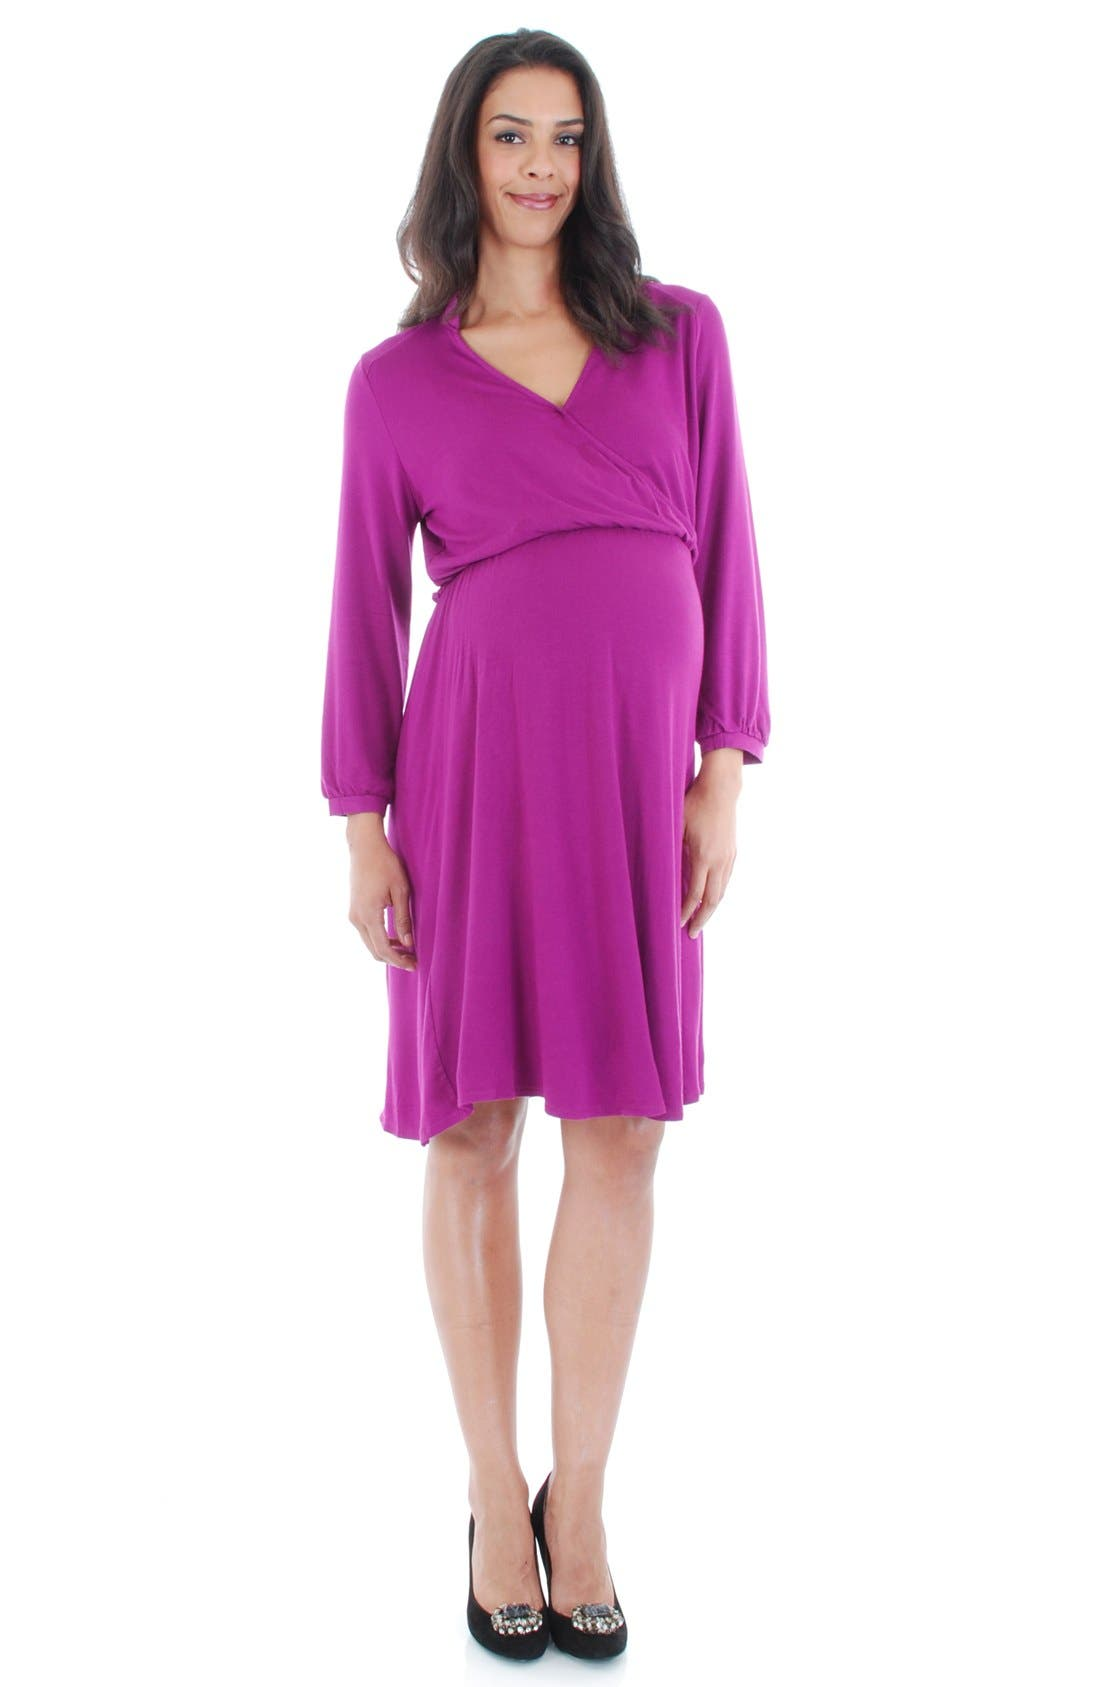 Everly Grey 'Sicily' Maternity/Nursing Dress,                             Main thumbnail 1, color,                             Orchid